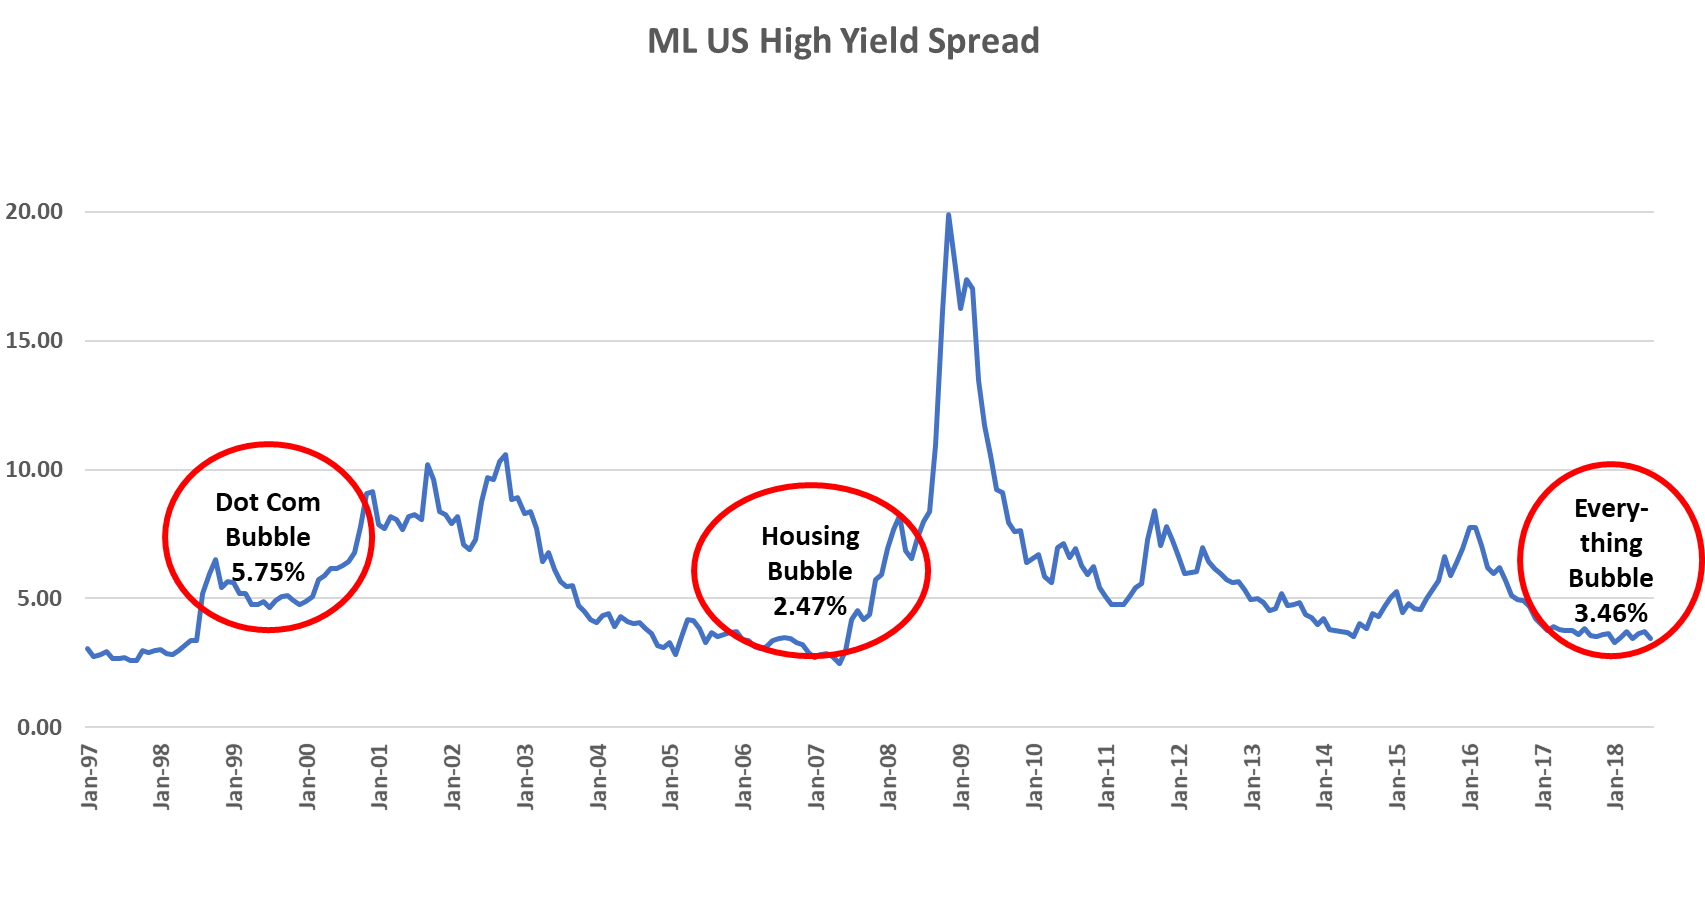 ML US High Yield Spread